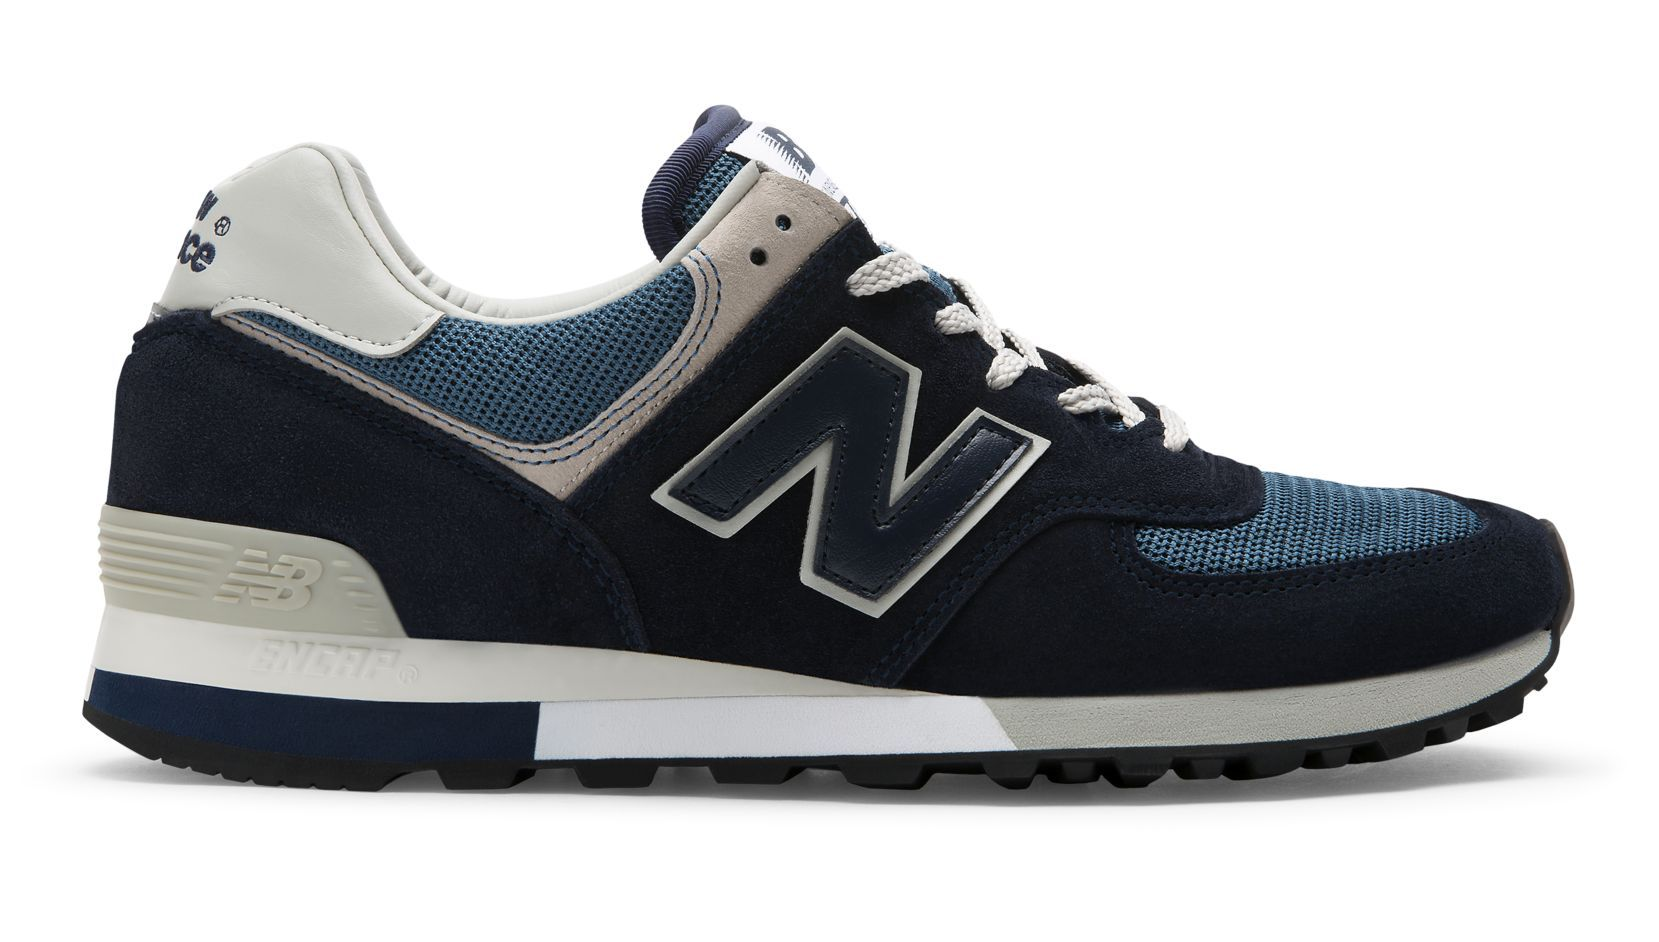 576 Made in UK New balance